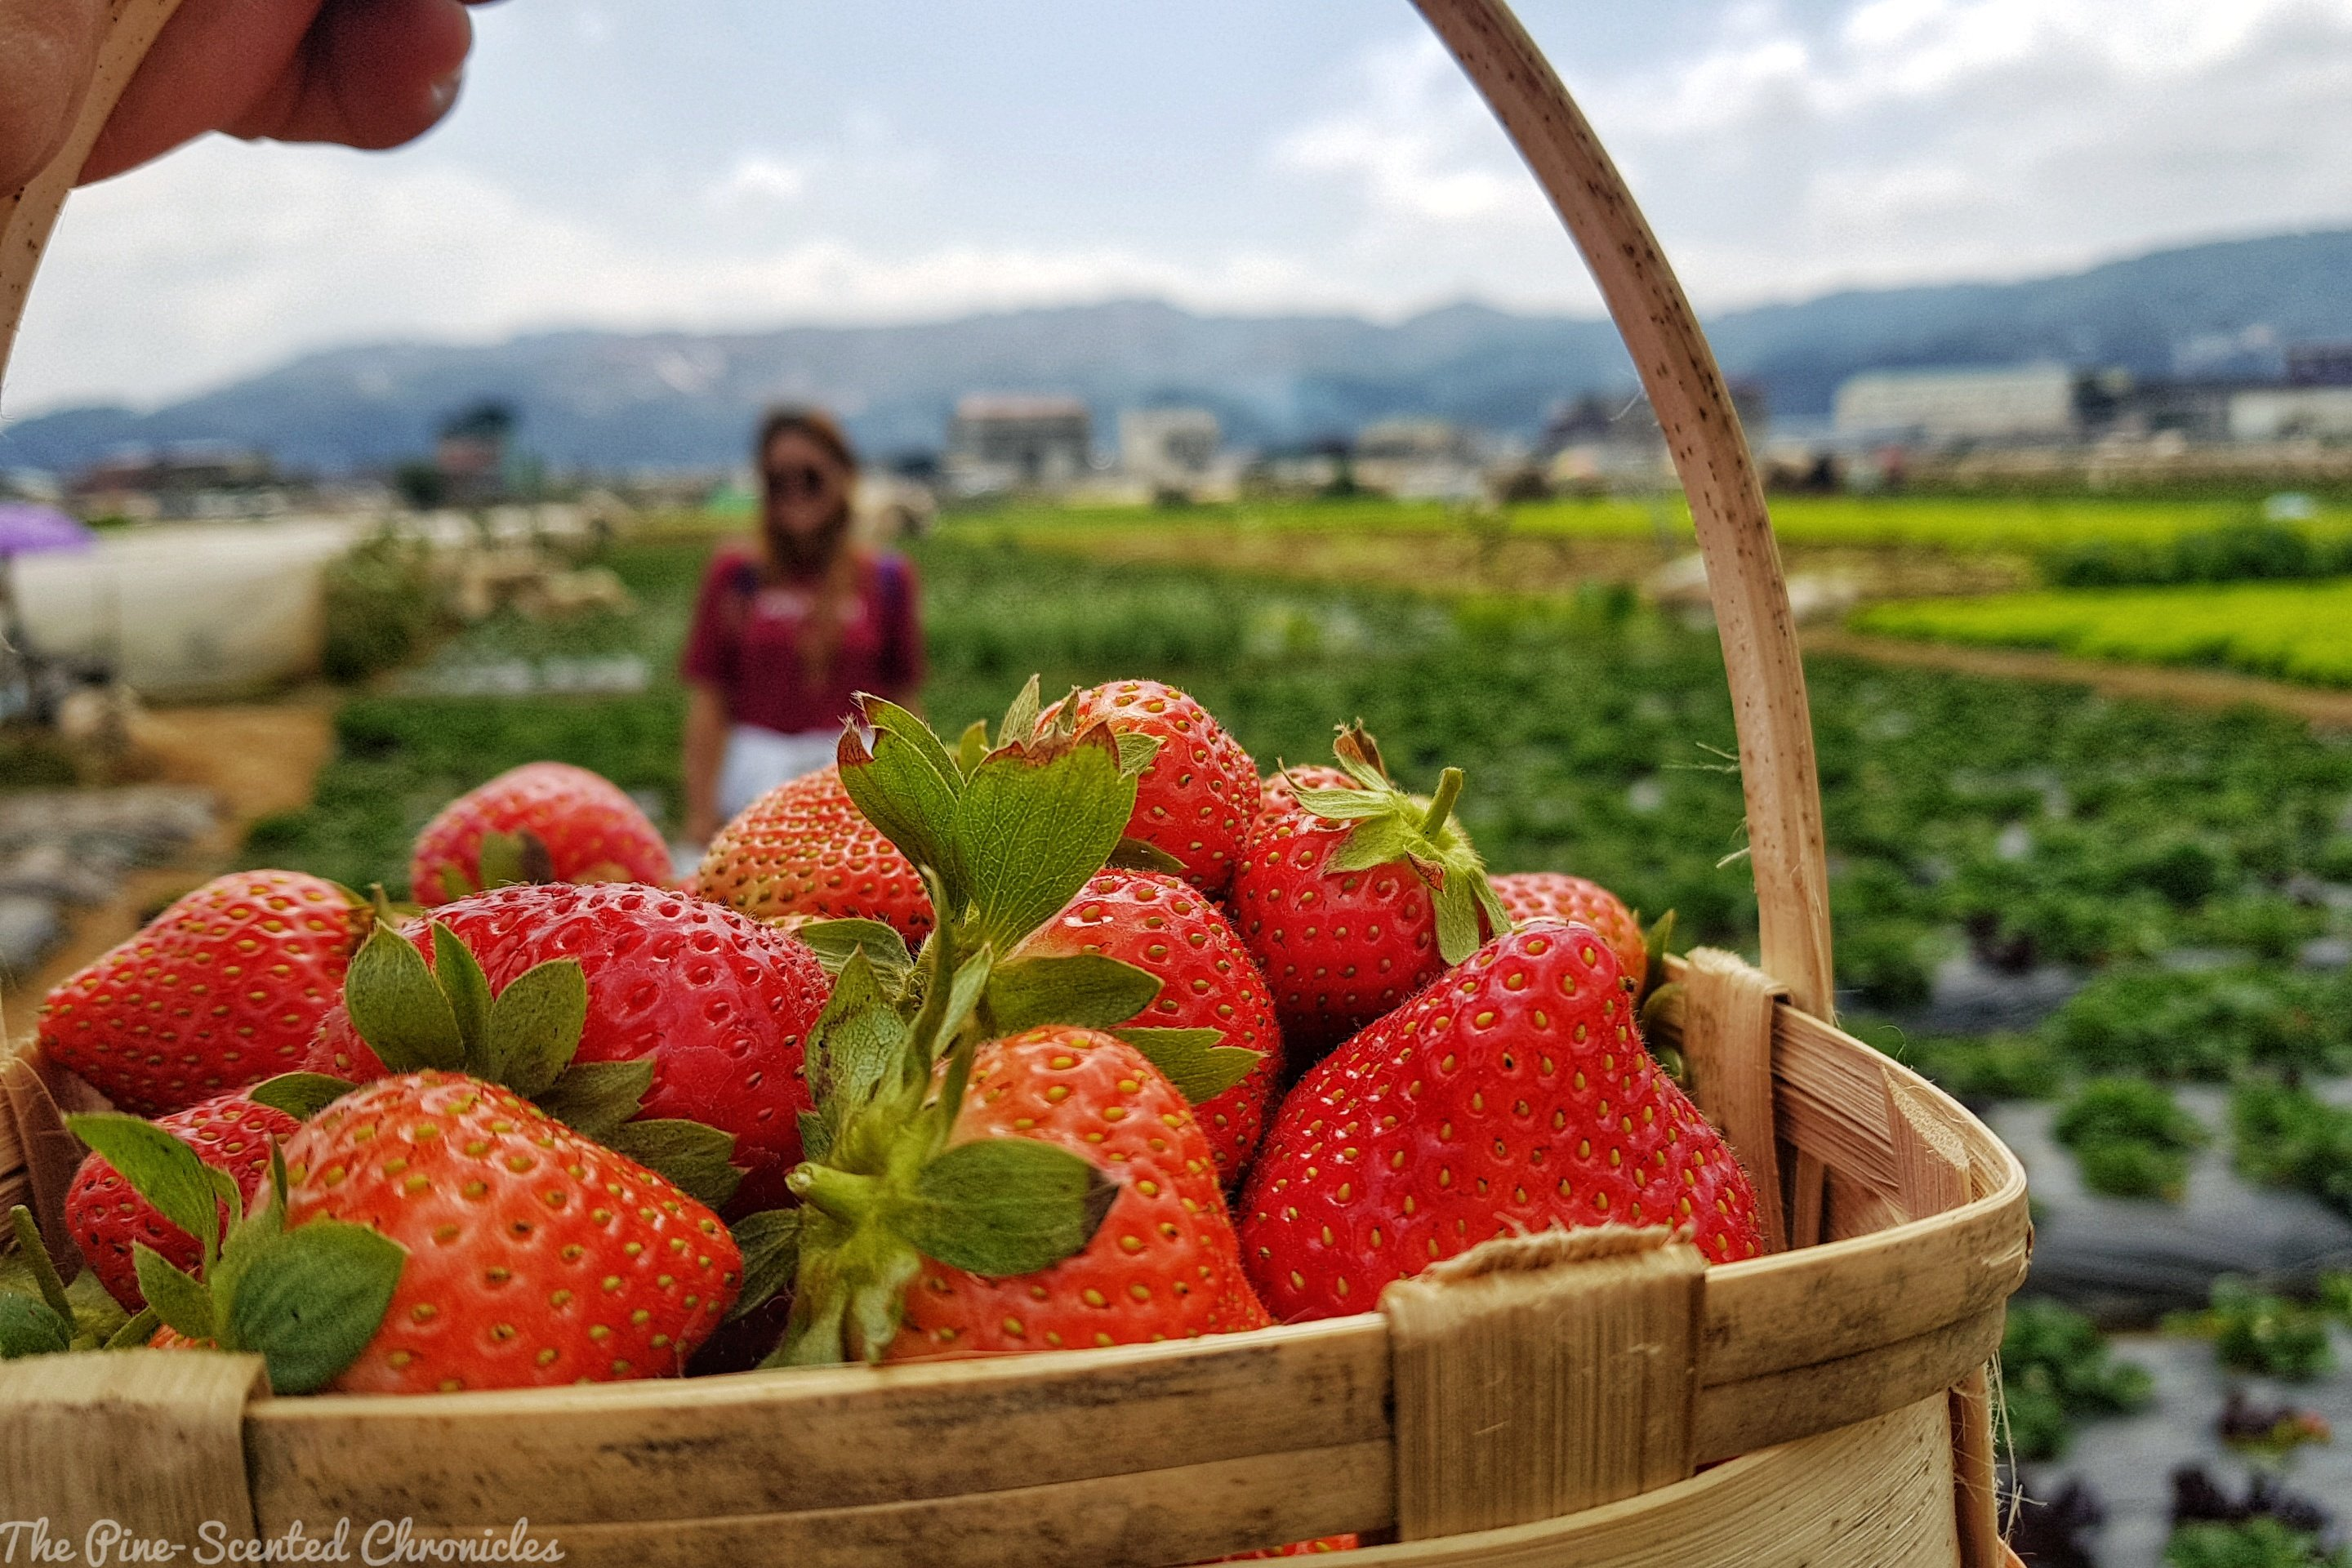 Into the Strawberry Fields of La Trinidad – The Pine-Scented Chronicles